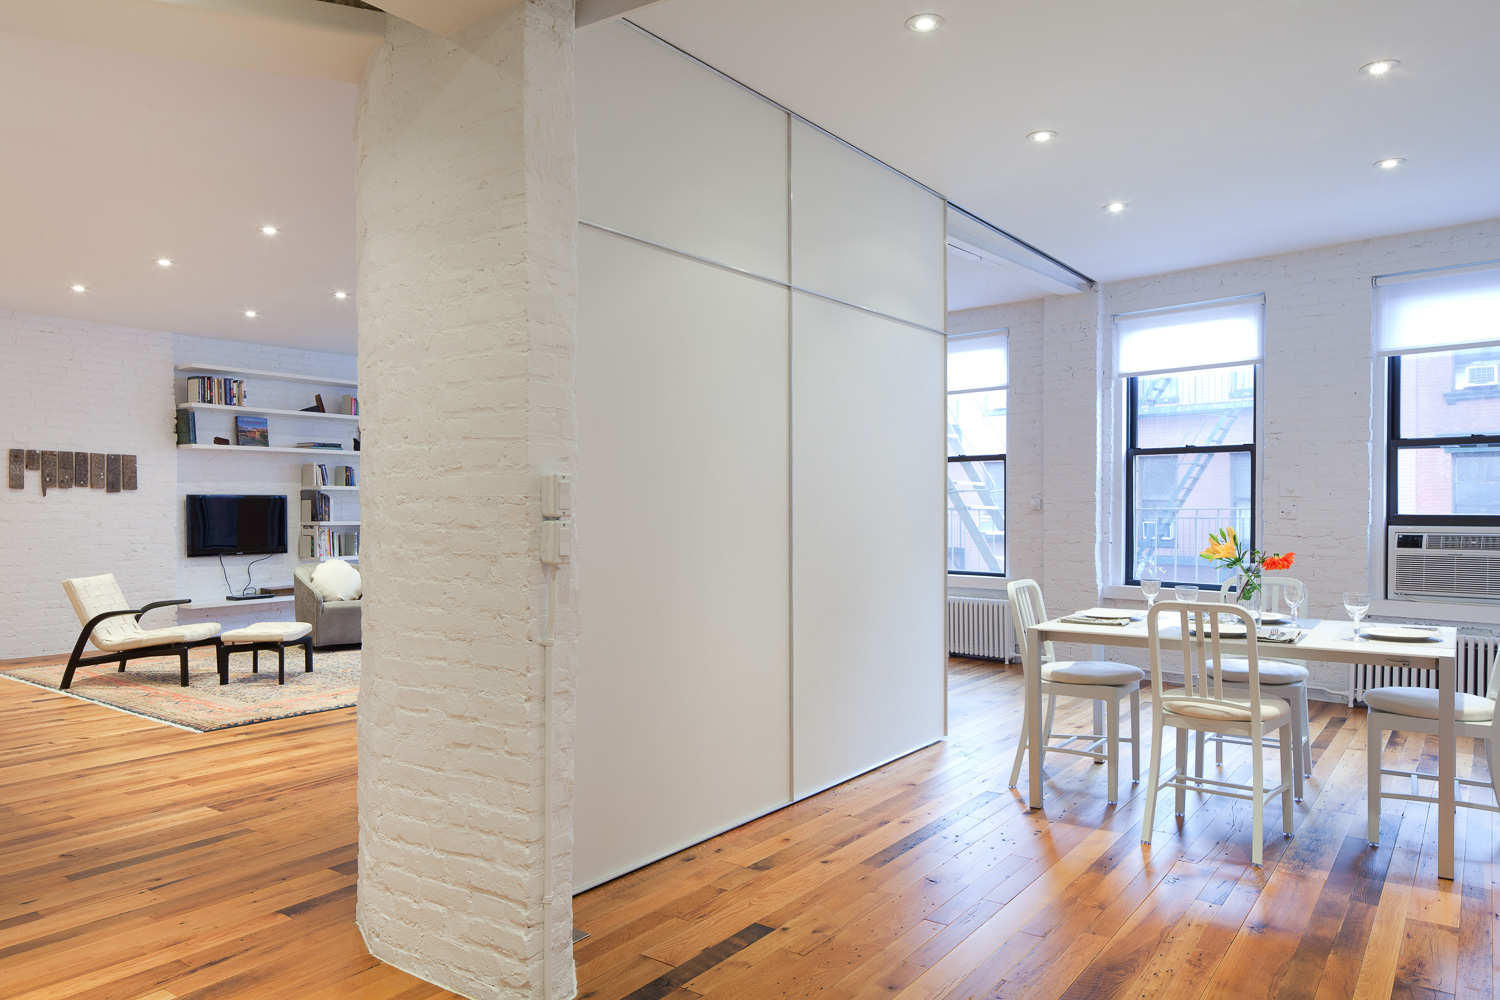 Munter Residence by I-Beam_Dining area & Living Area_Photo by Travis Dubreuil.jpg